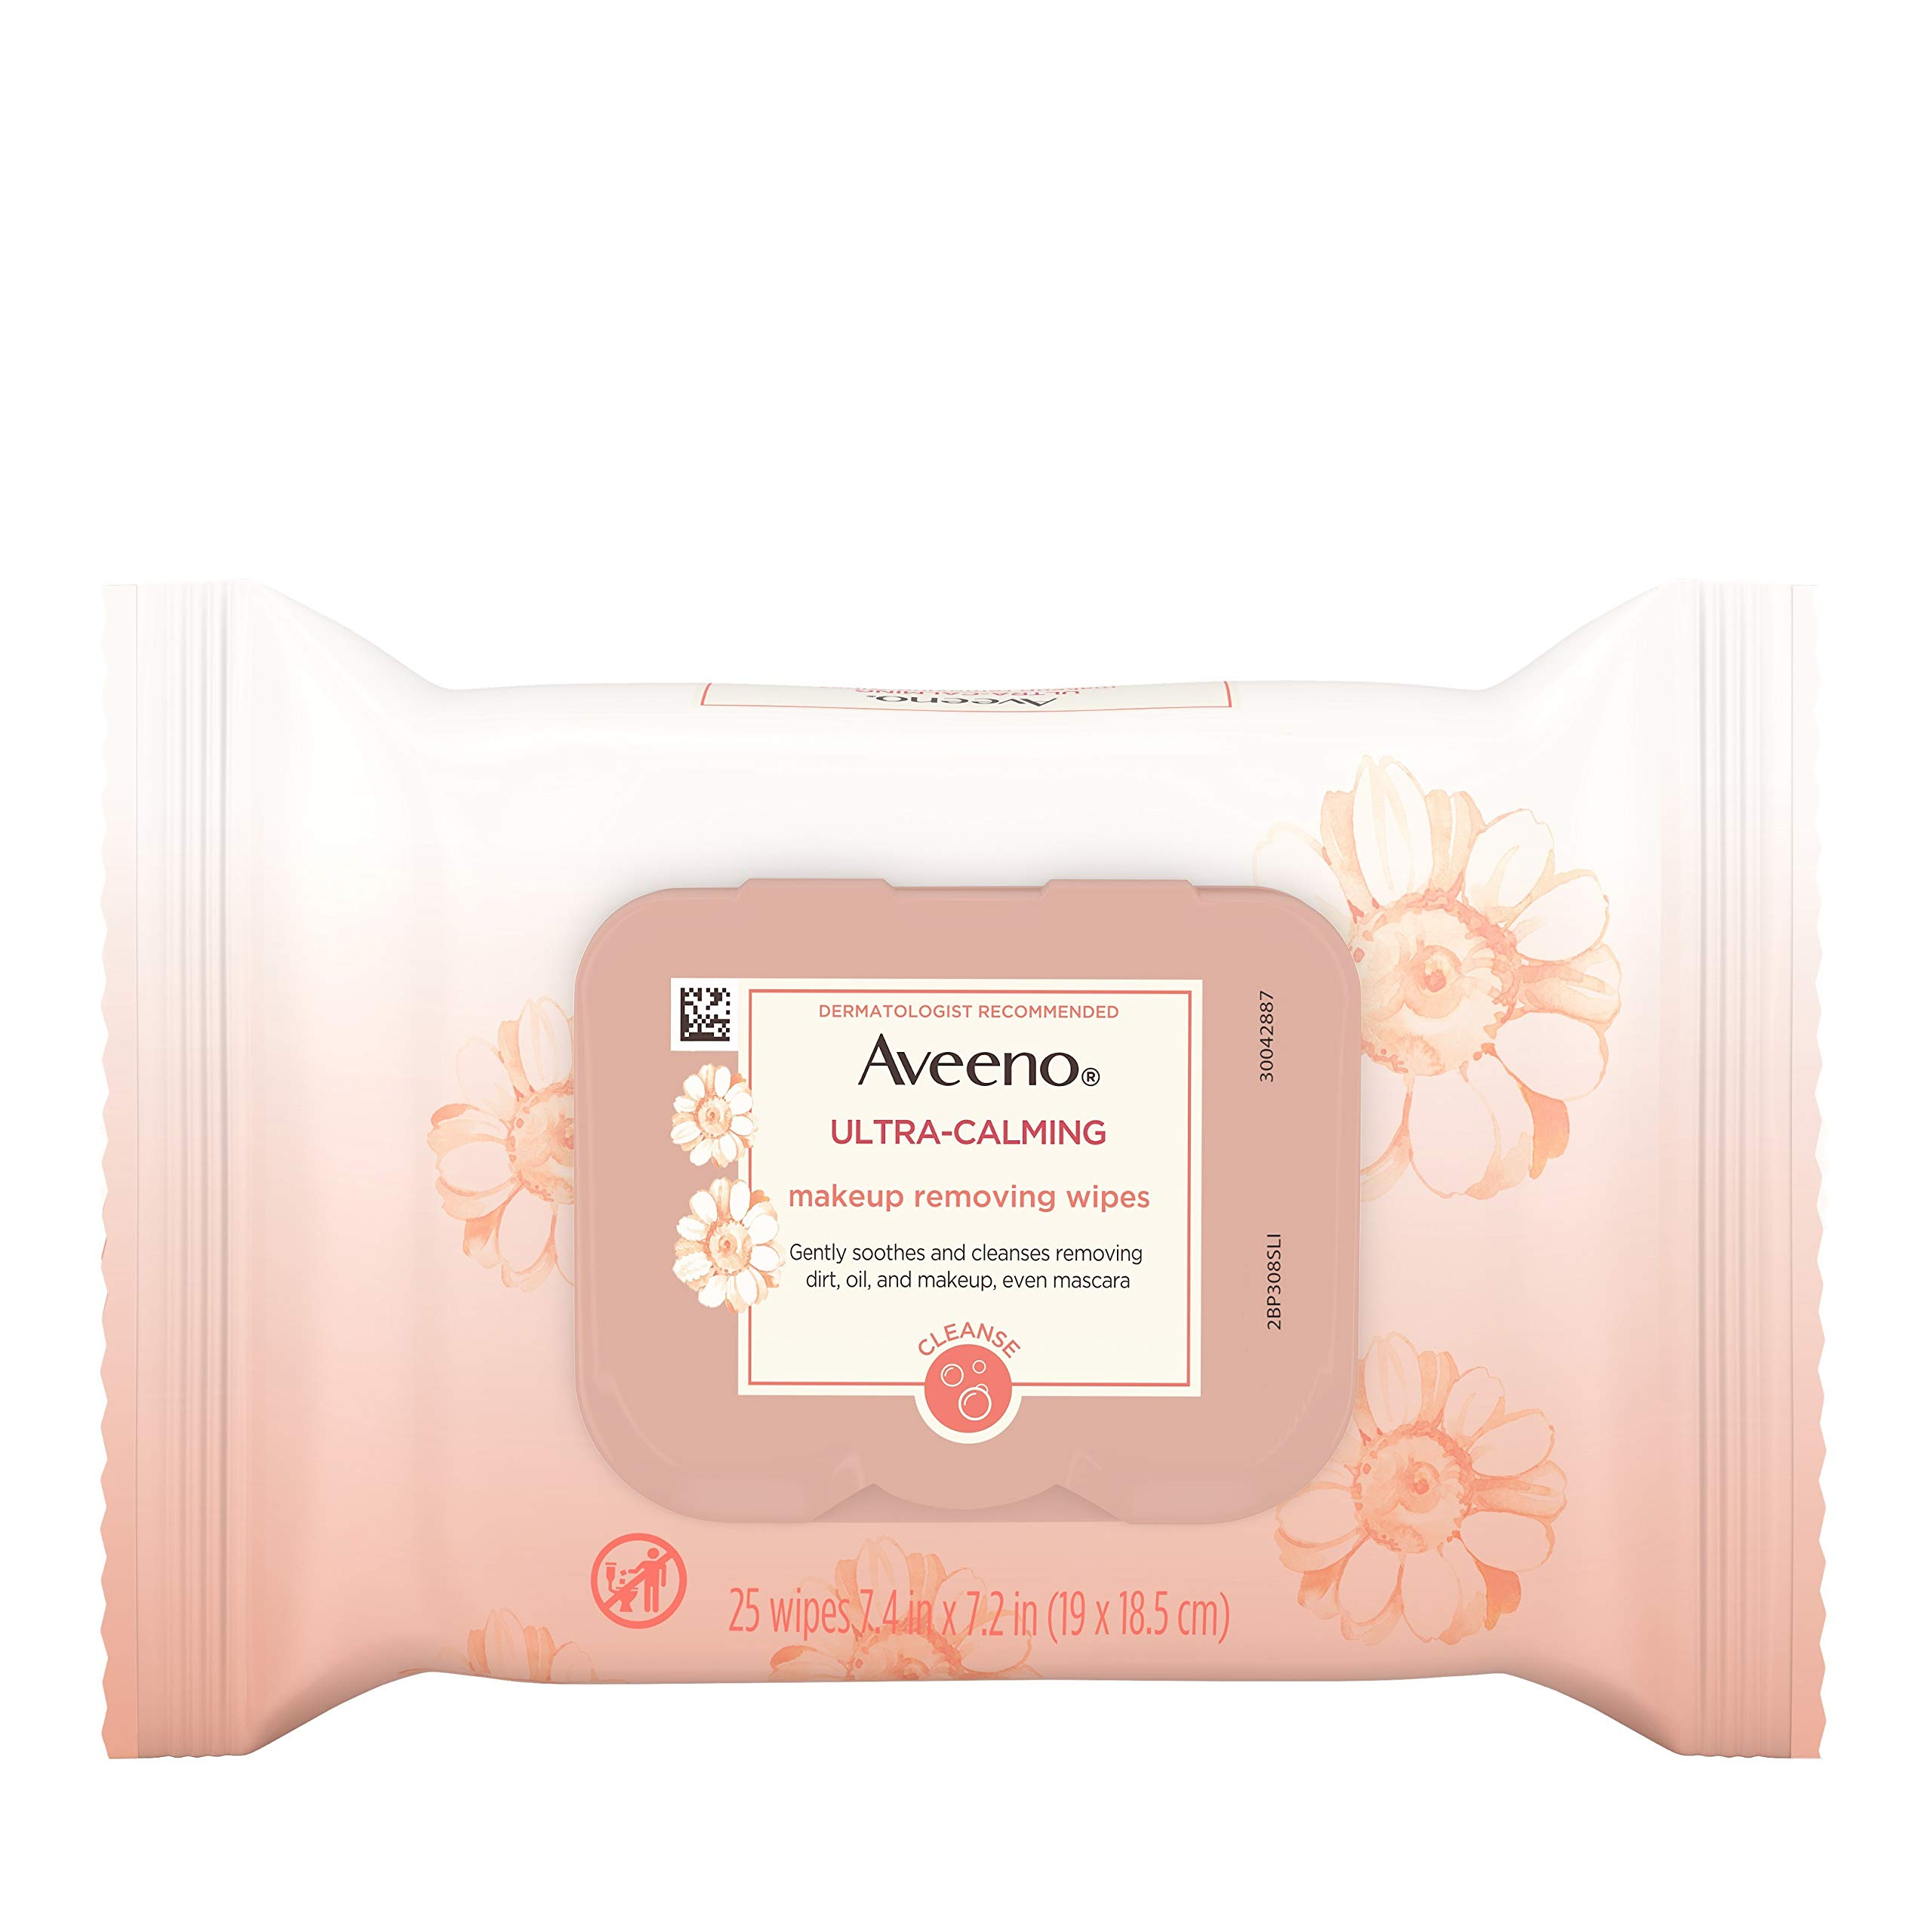 Aveeno Ultra-Calming Makeup Removing Facial Cleansing Wipes with Feverfew Extract, Oil-Free Soothing Face Wipes for Sensitive Skin, Gentle & Non-Comedogenic, 25 Count